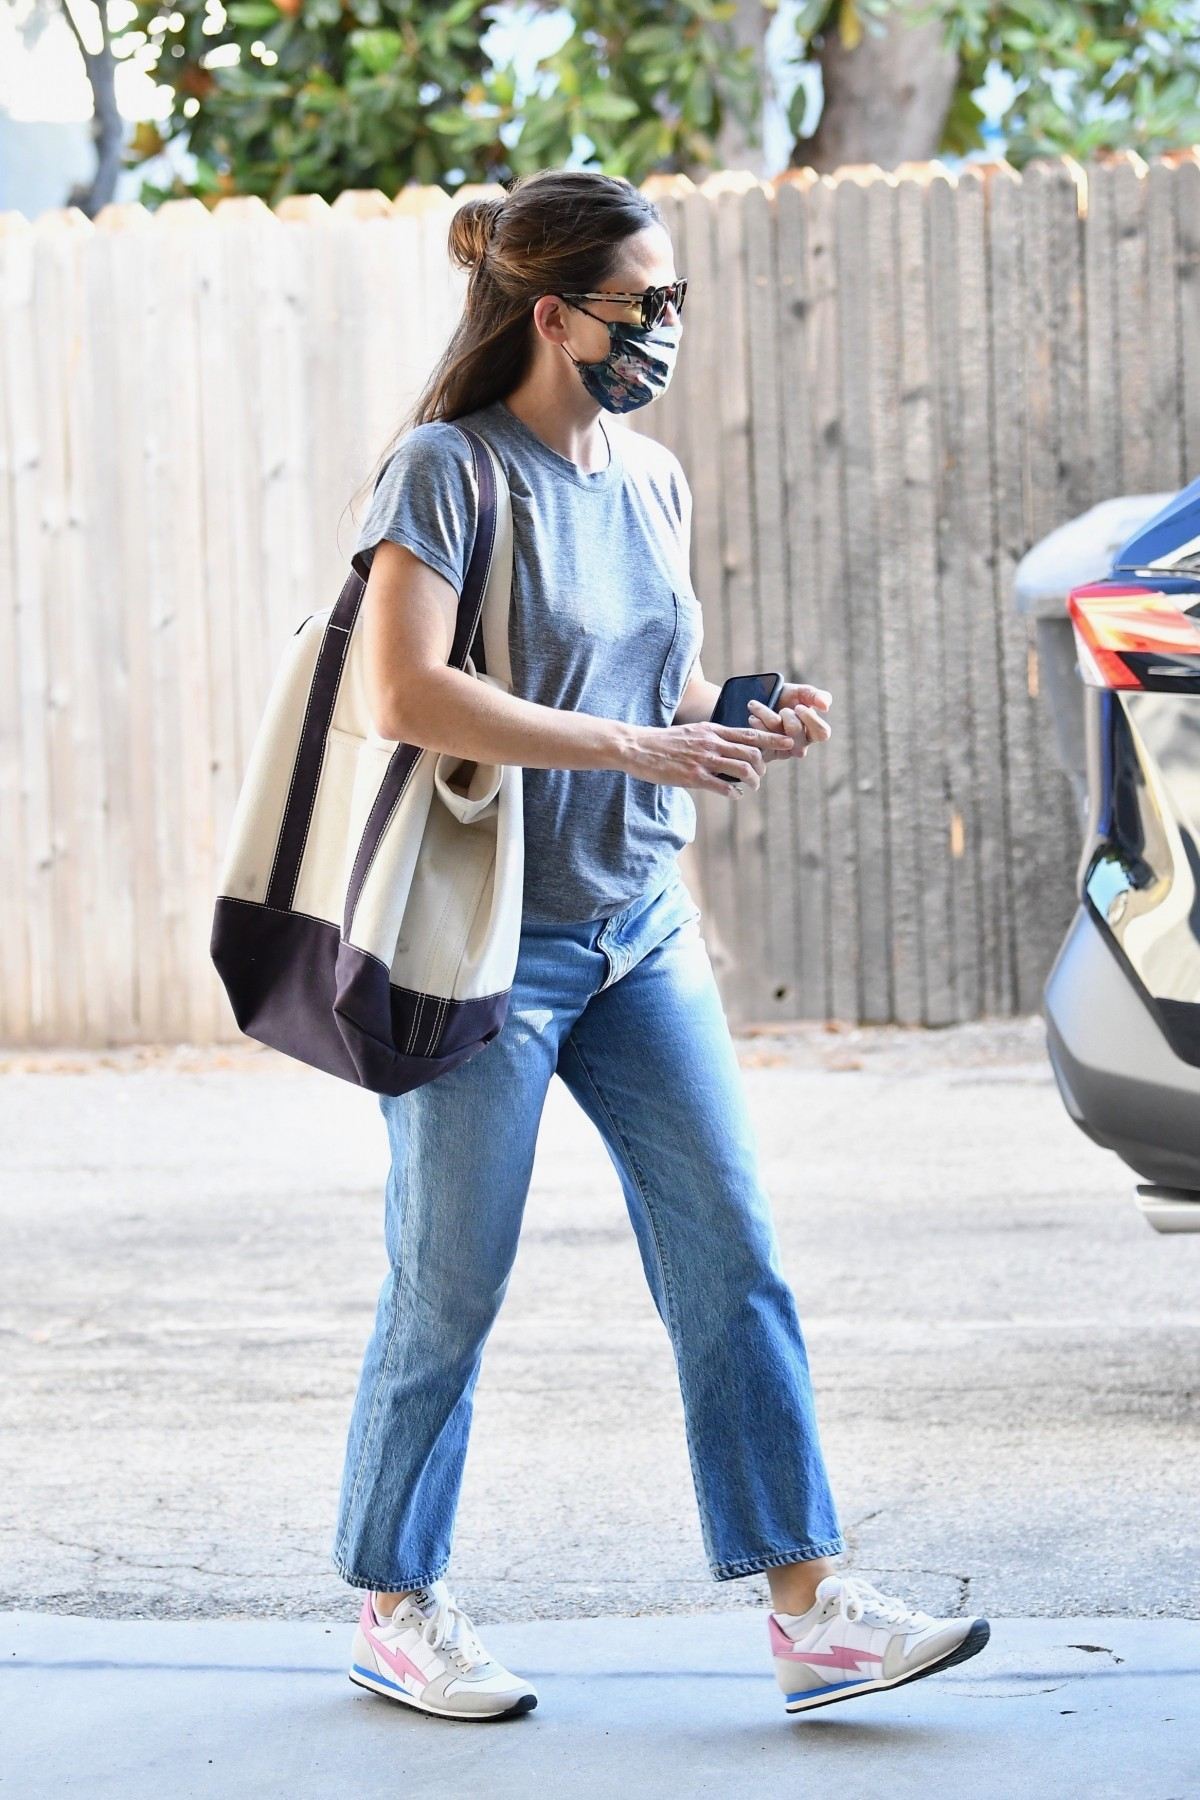 Jennifer Garner takes some me-time and visits a spa in Brentwood